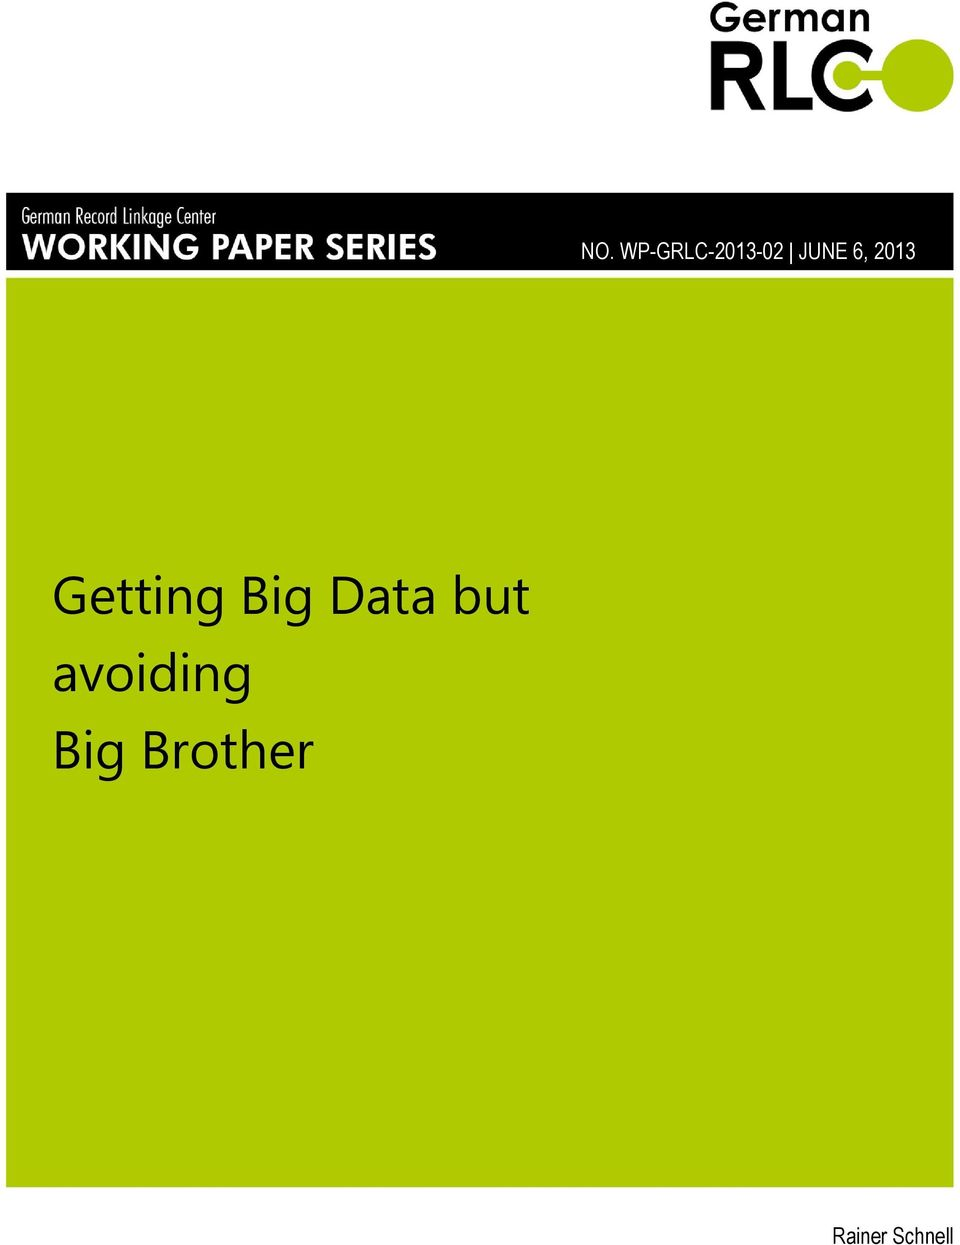 Big Data but avoiding